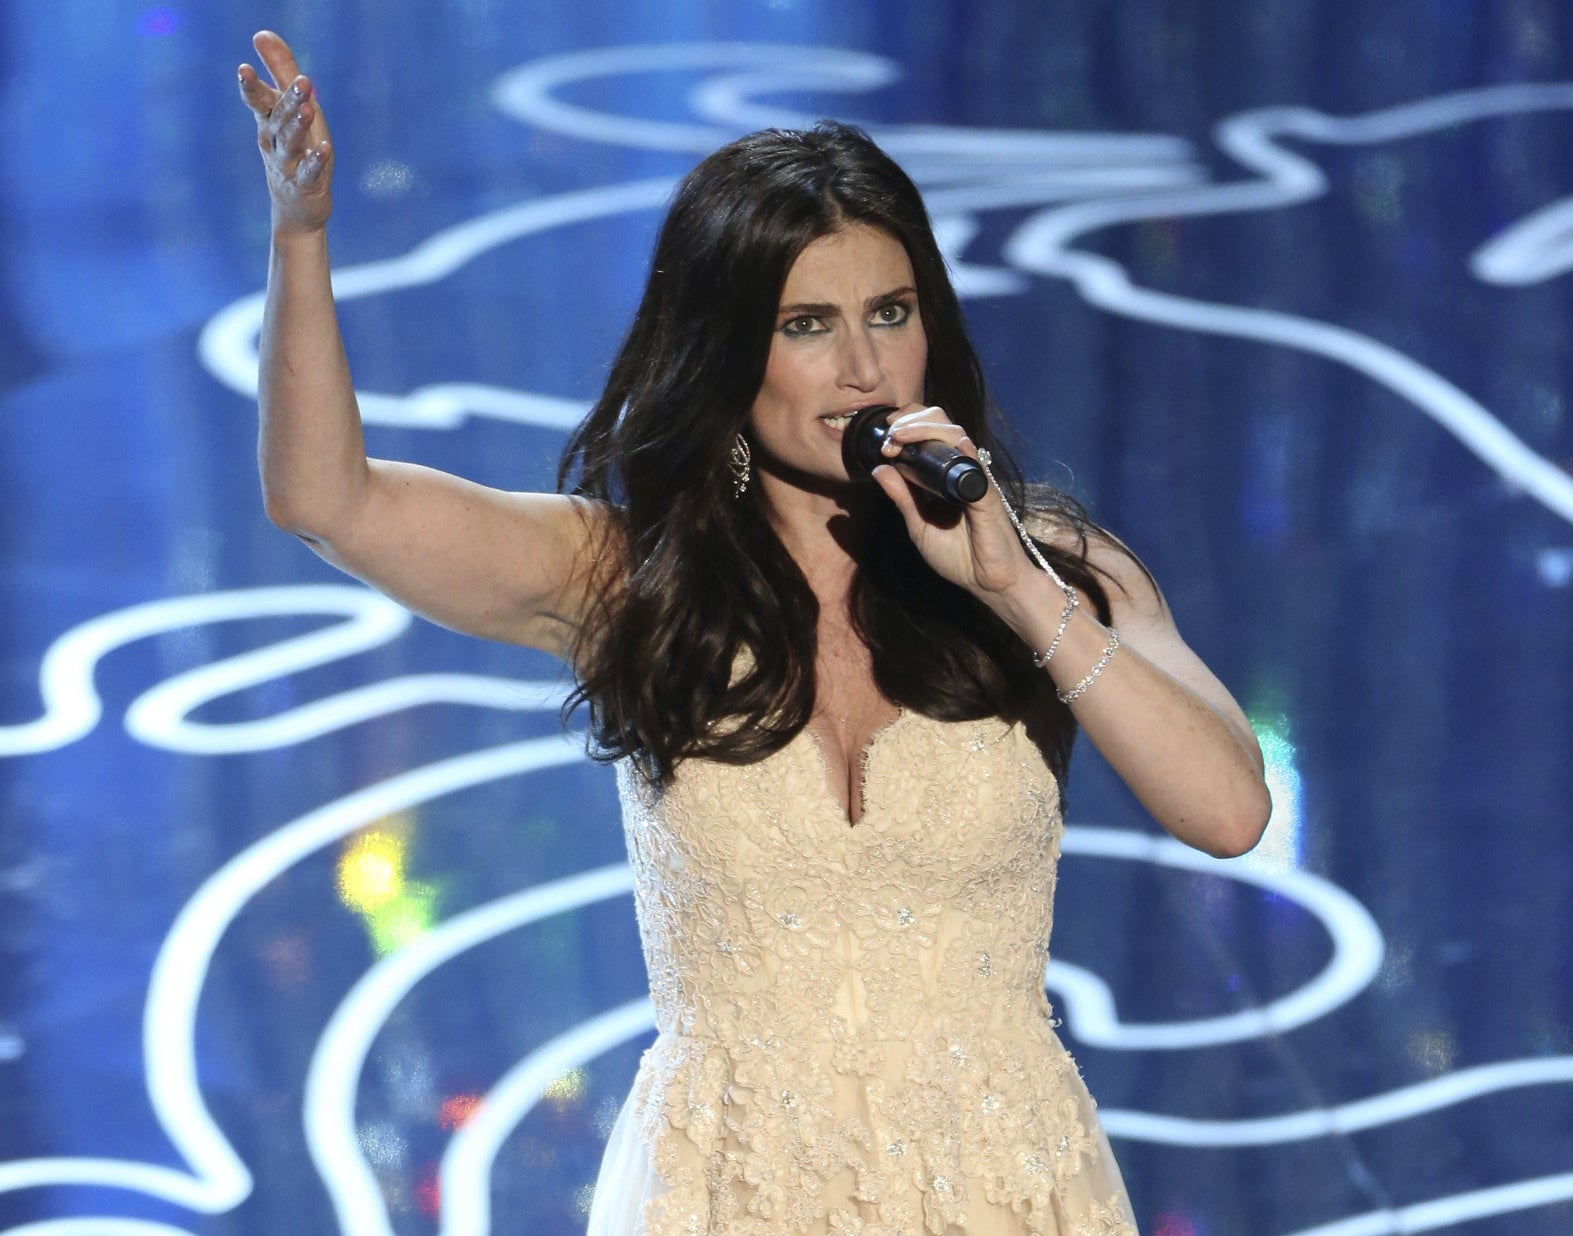 Idina throws her hands in the air while performing at the Oscars